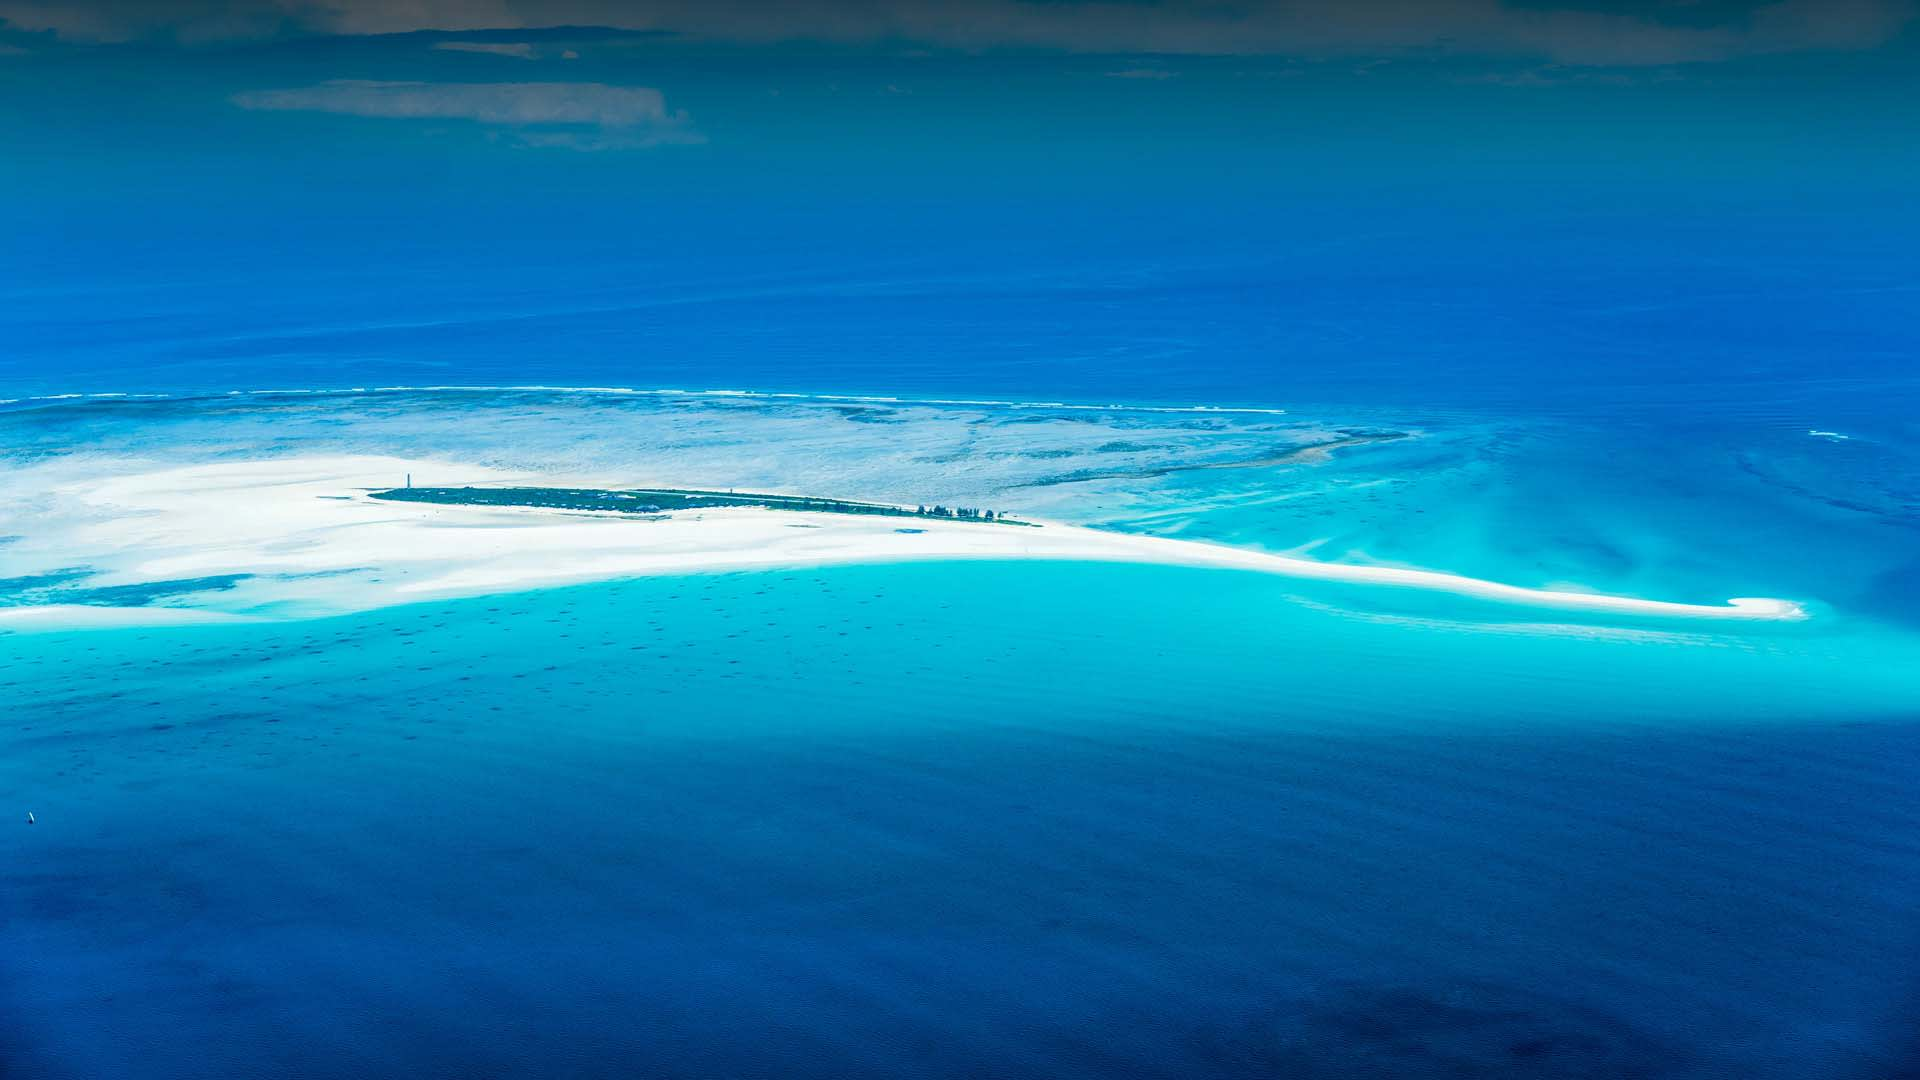 https://assets.anantara.com/image/upload/q_auto,f_auto/media/minor/anantara/images/anantara-medjumbe-island-resort/the-resort/desktop-banner/anantara_medjumbe_island_island_ariel_header_1920x1080.jpg